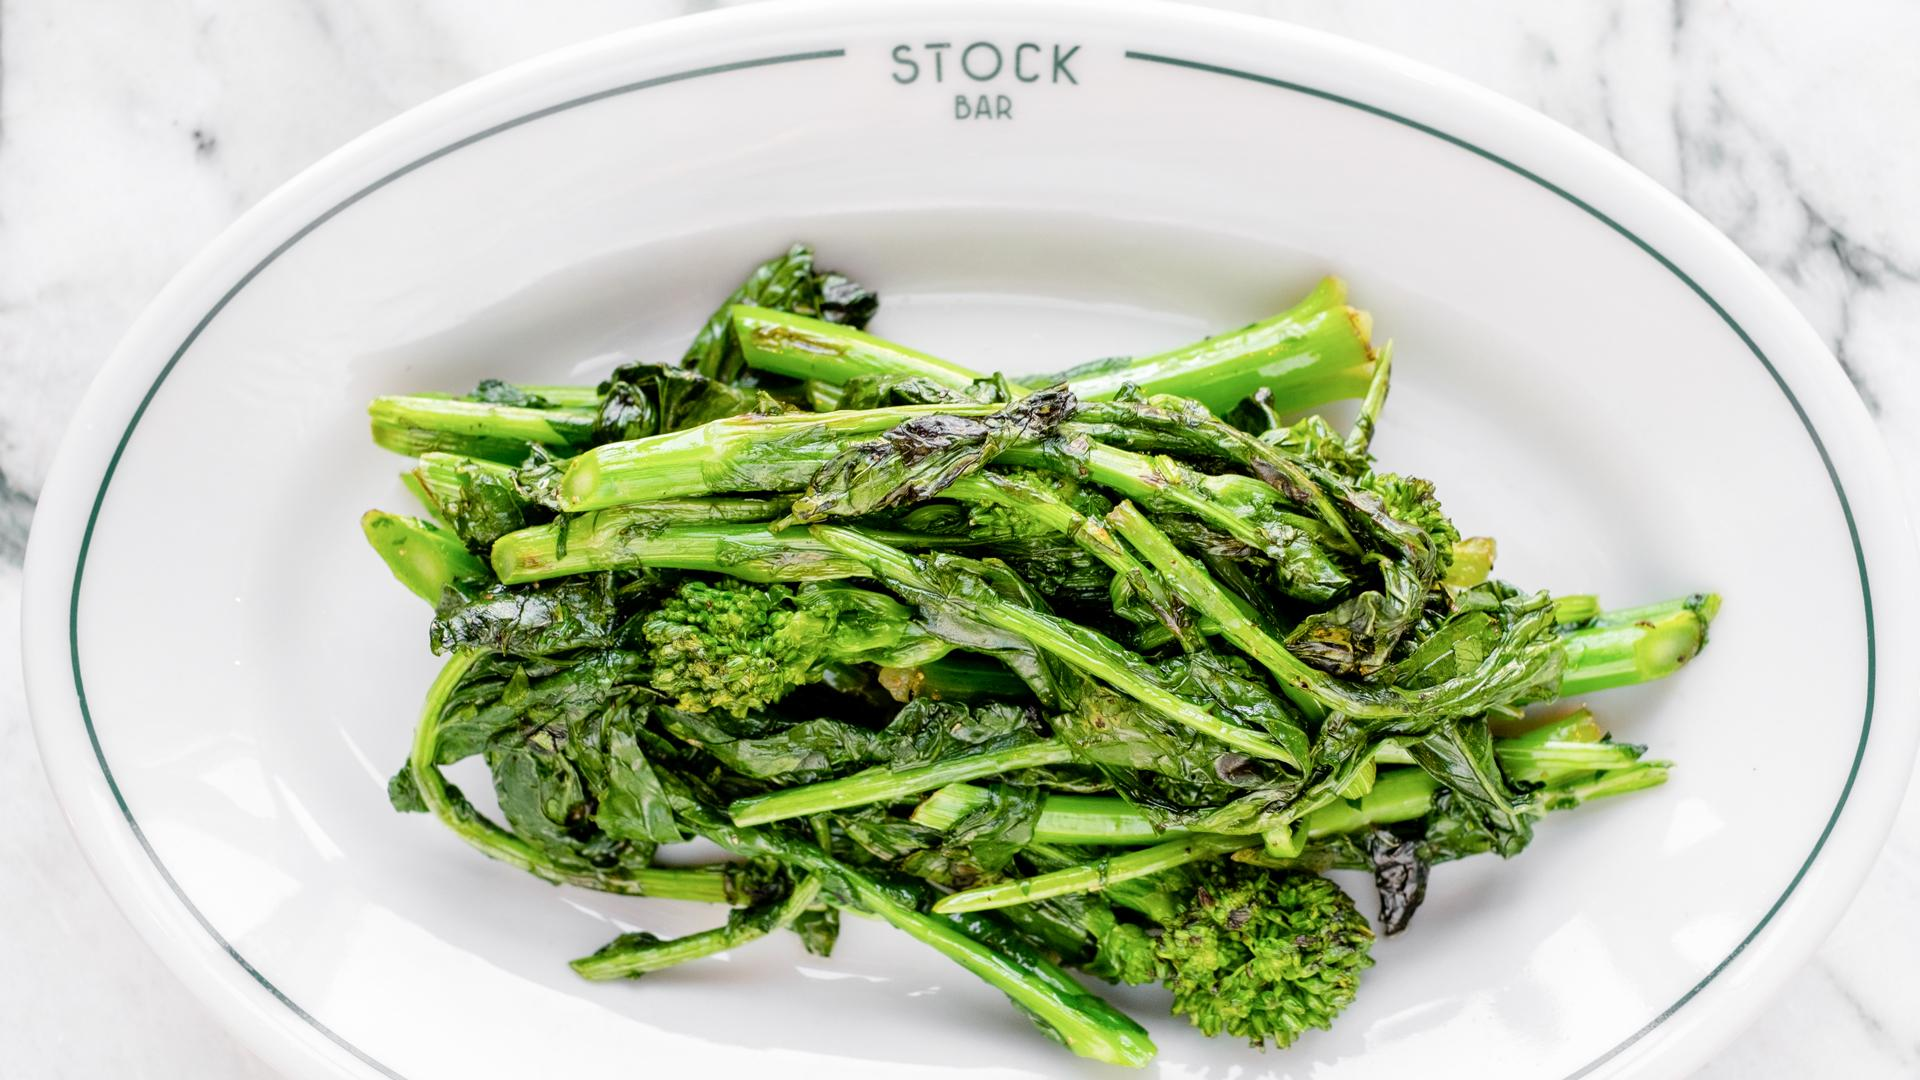 The best rooftop patios in Toronto | Broccolini at Stock Bar